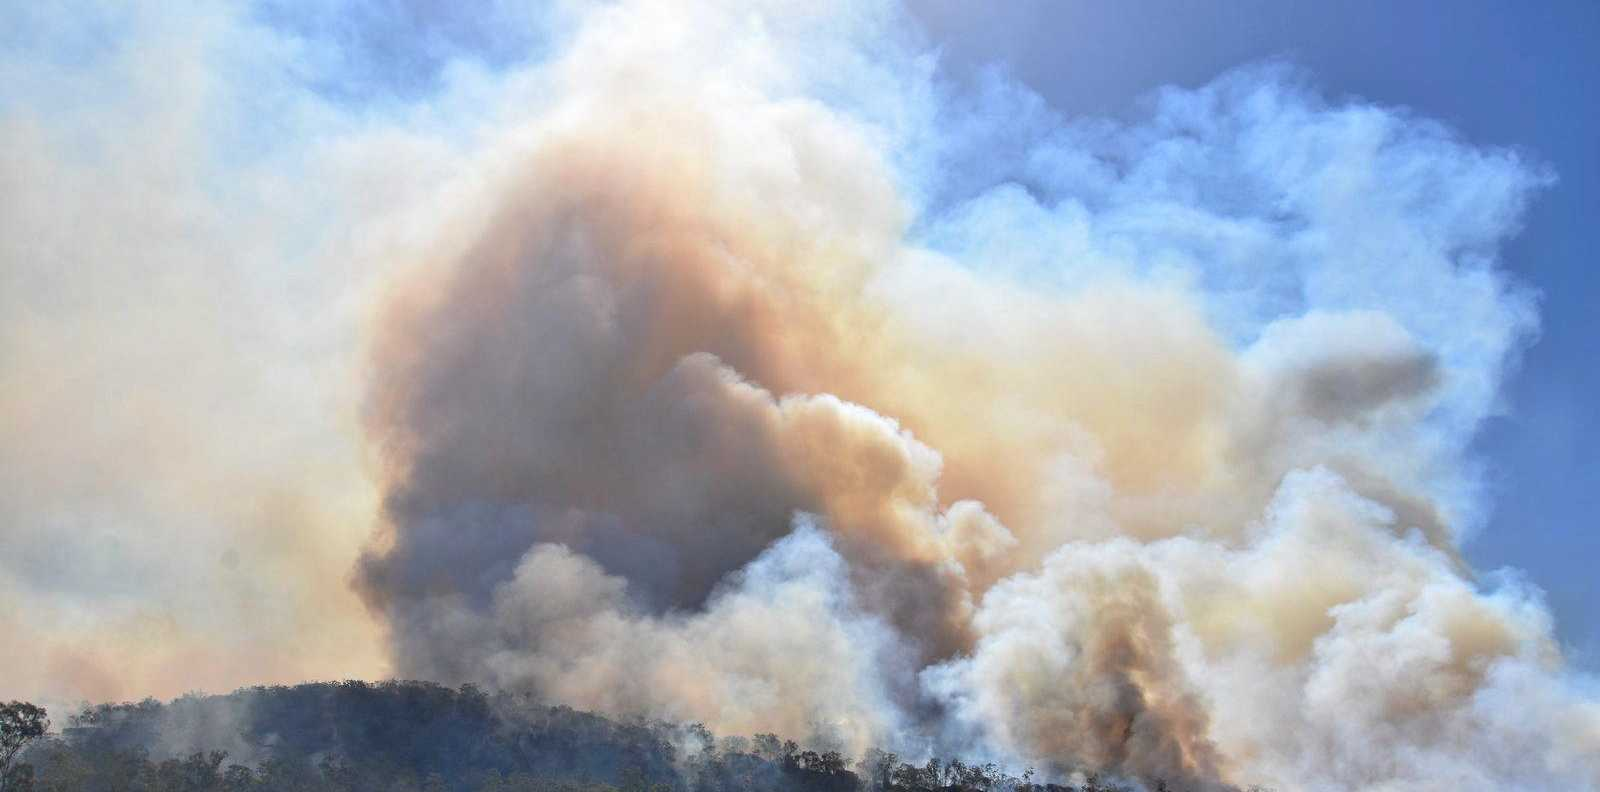 SMOKED OUT: A bushfire burning in the Mt Kelman area.